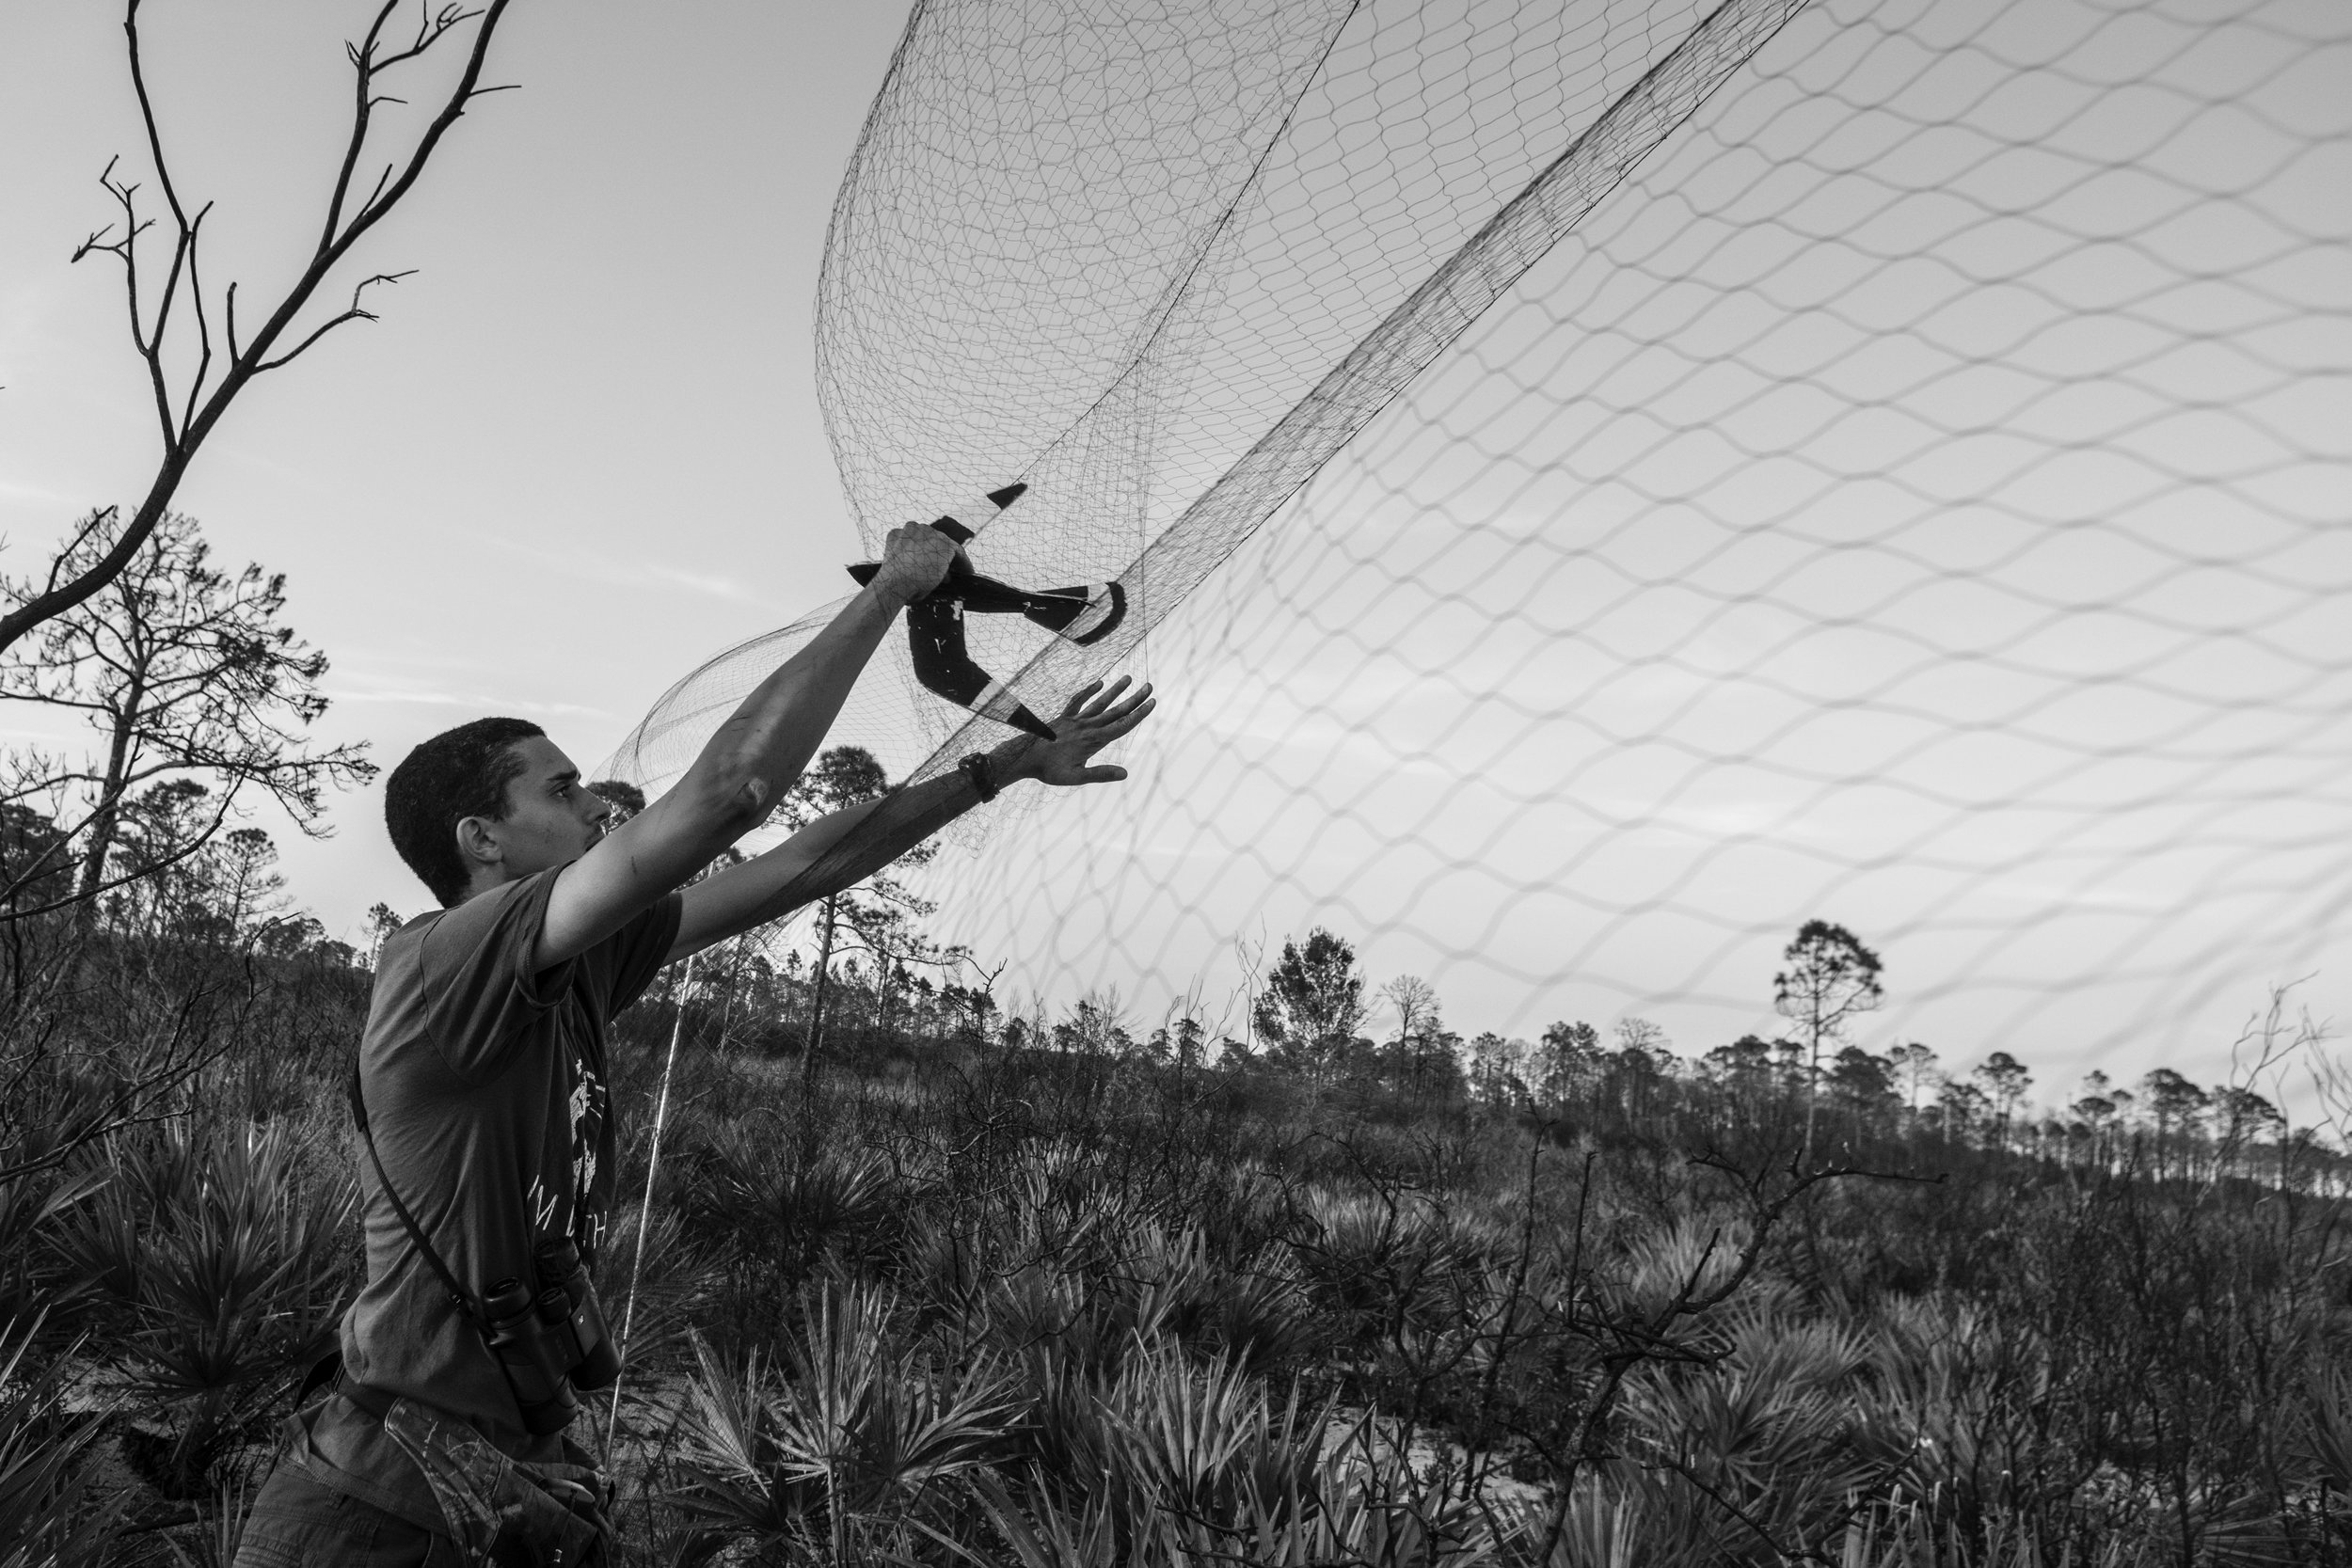 Researcher Greg Thompson puts a handmade decoy in the net to draw in one of the nearby Common Nighthawks. The team will also play audio recordings of Common Nighthawk sounds to attract the birds.